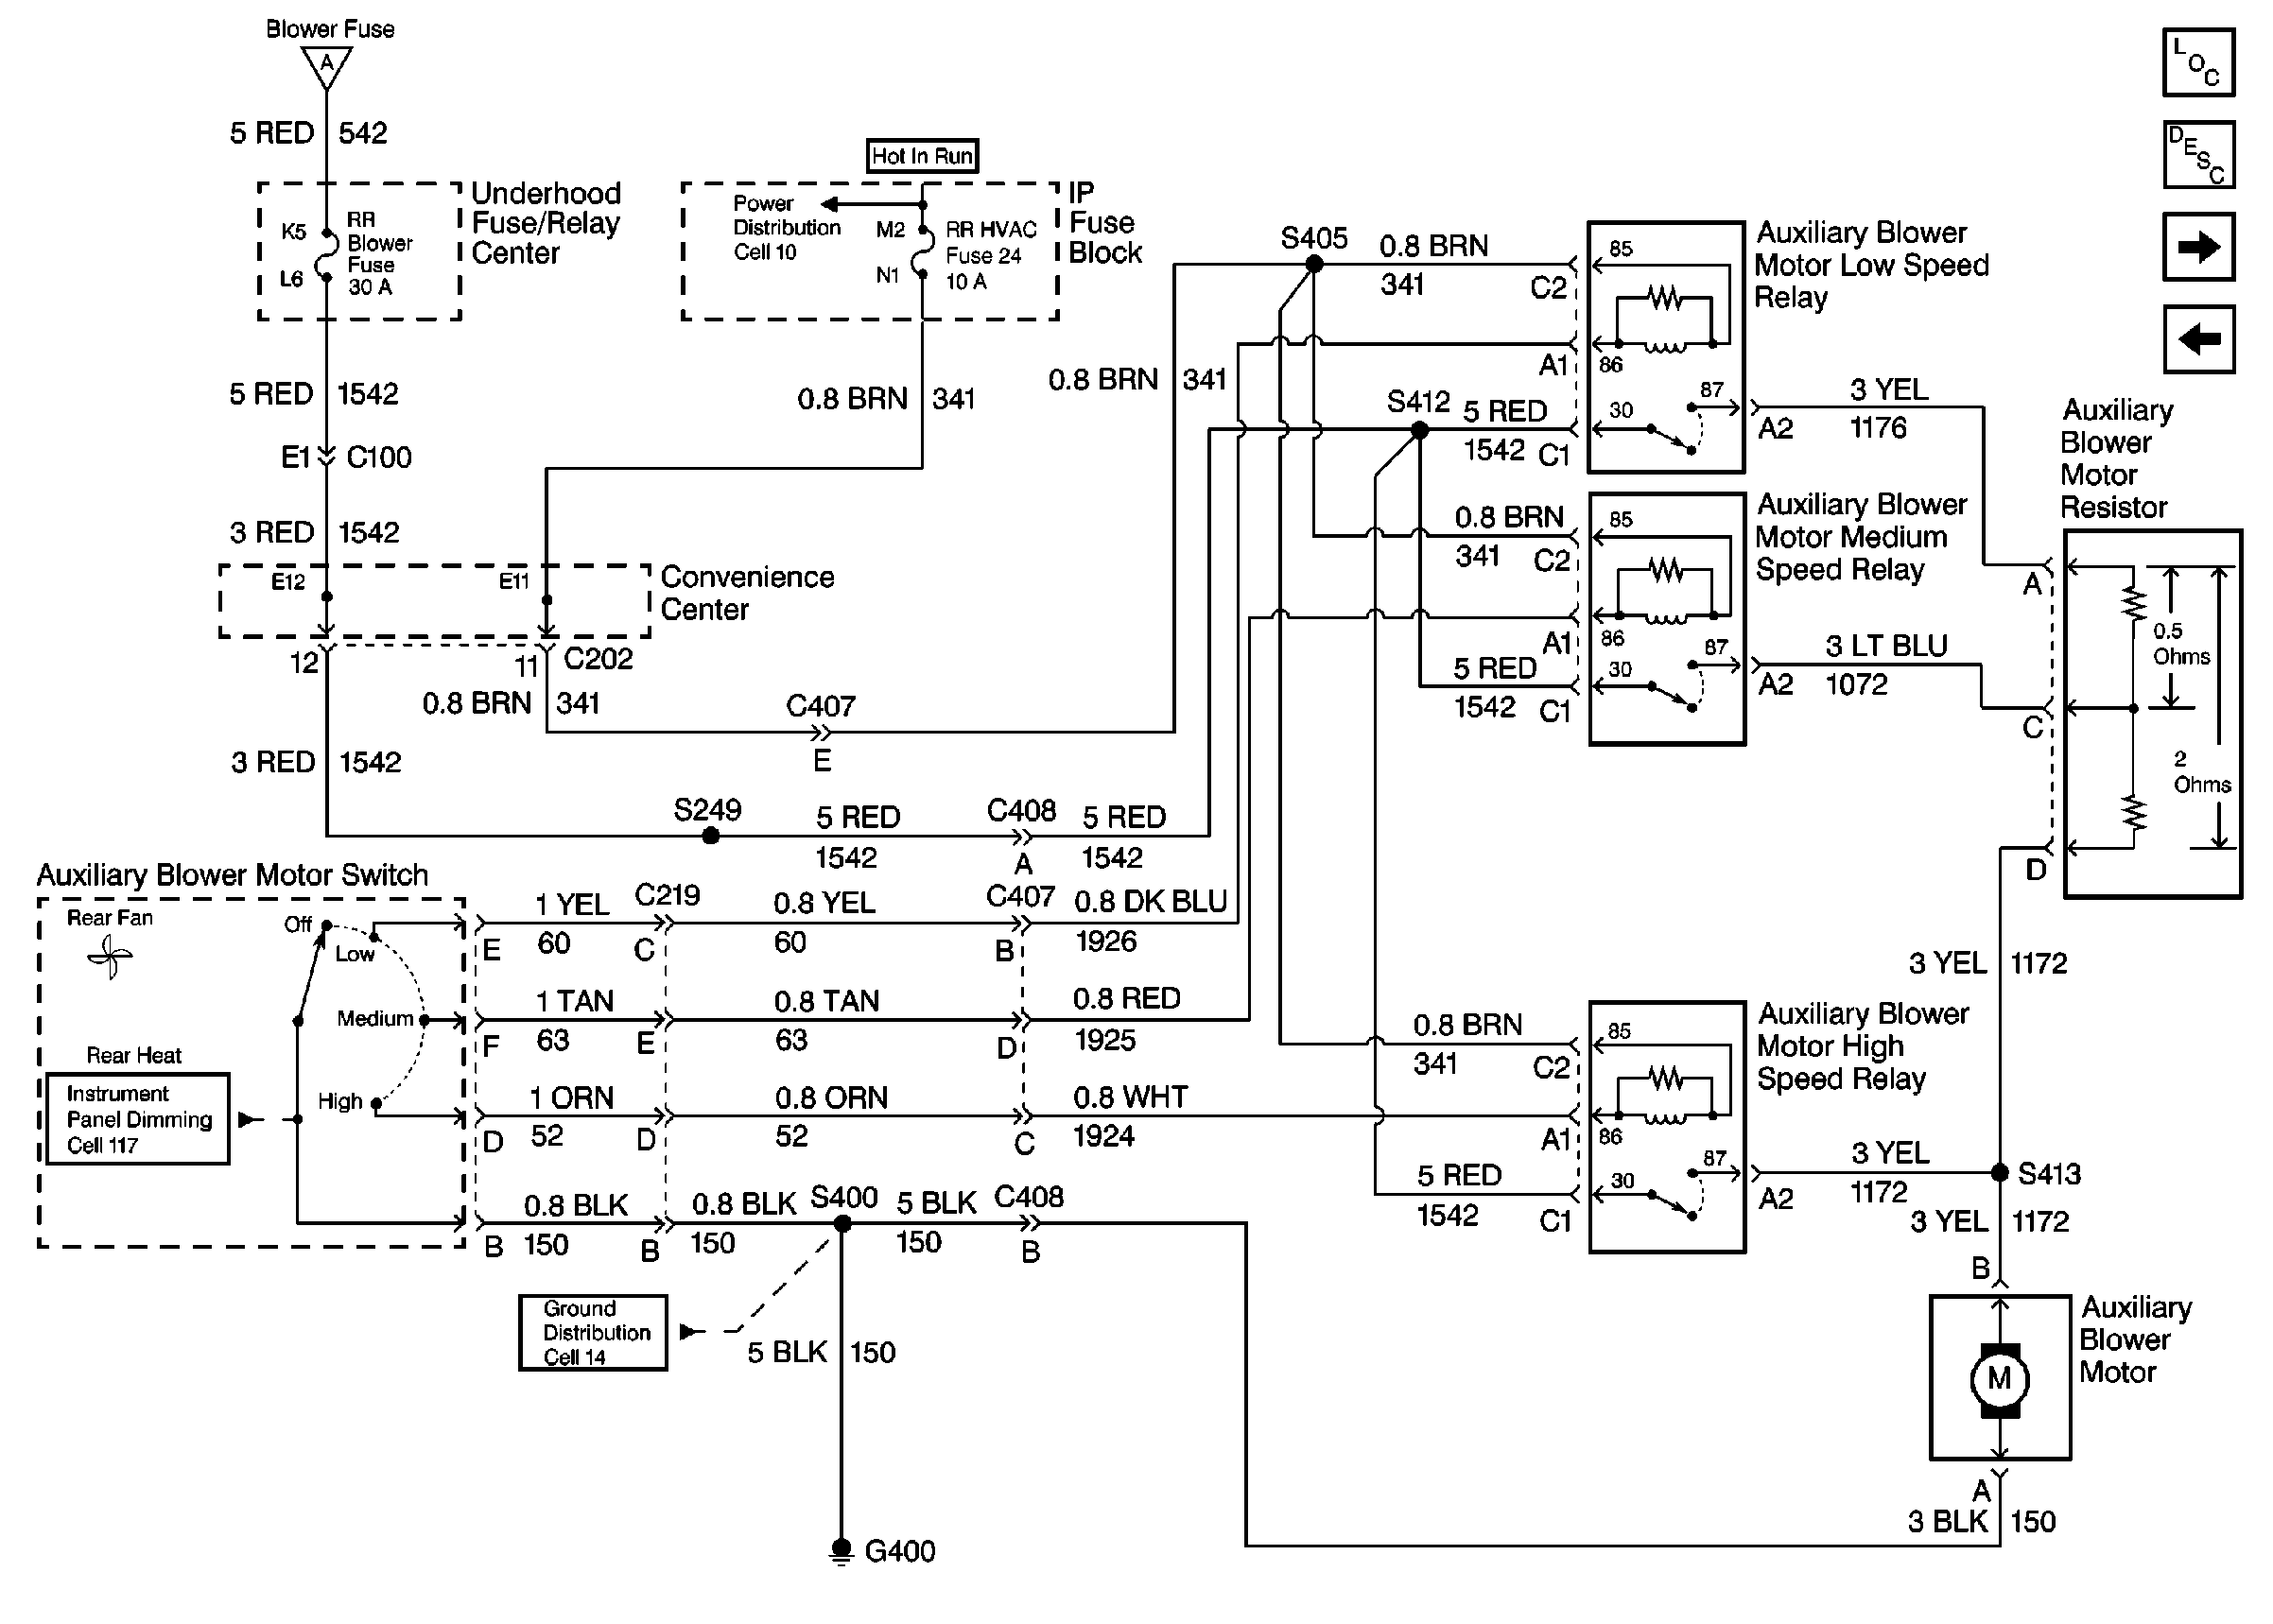 2004 Cadillac Trailer Wiring Instructions from ww2.justanswer.com